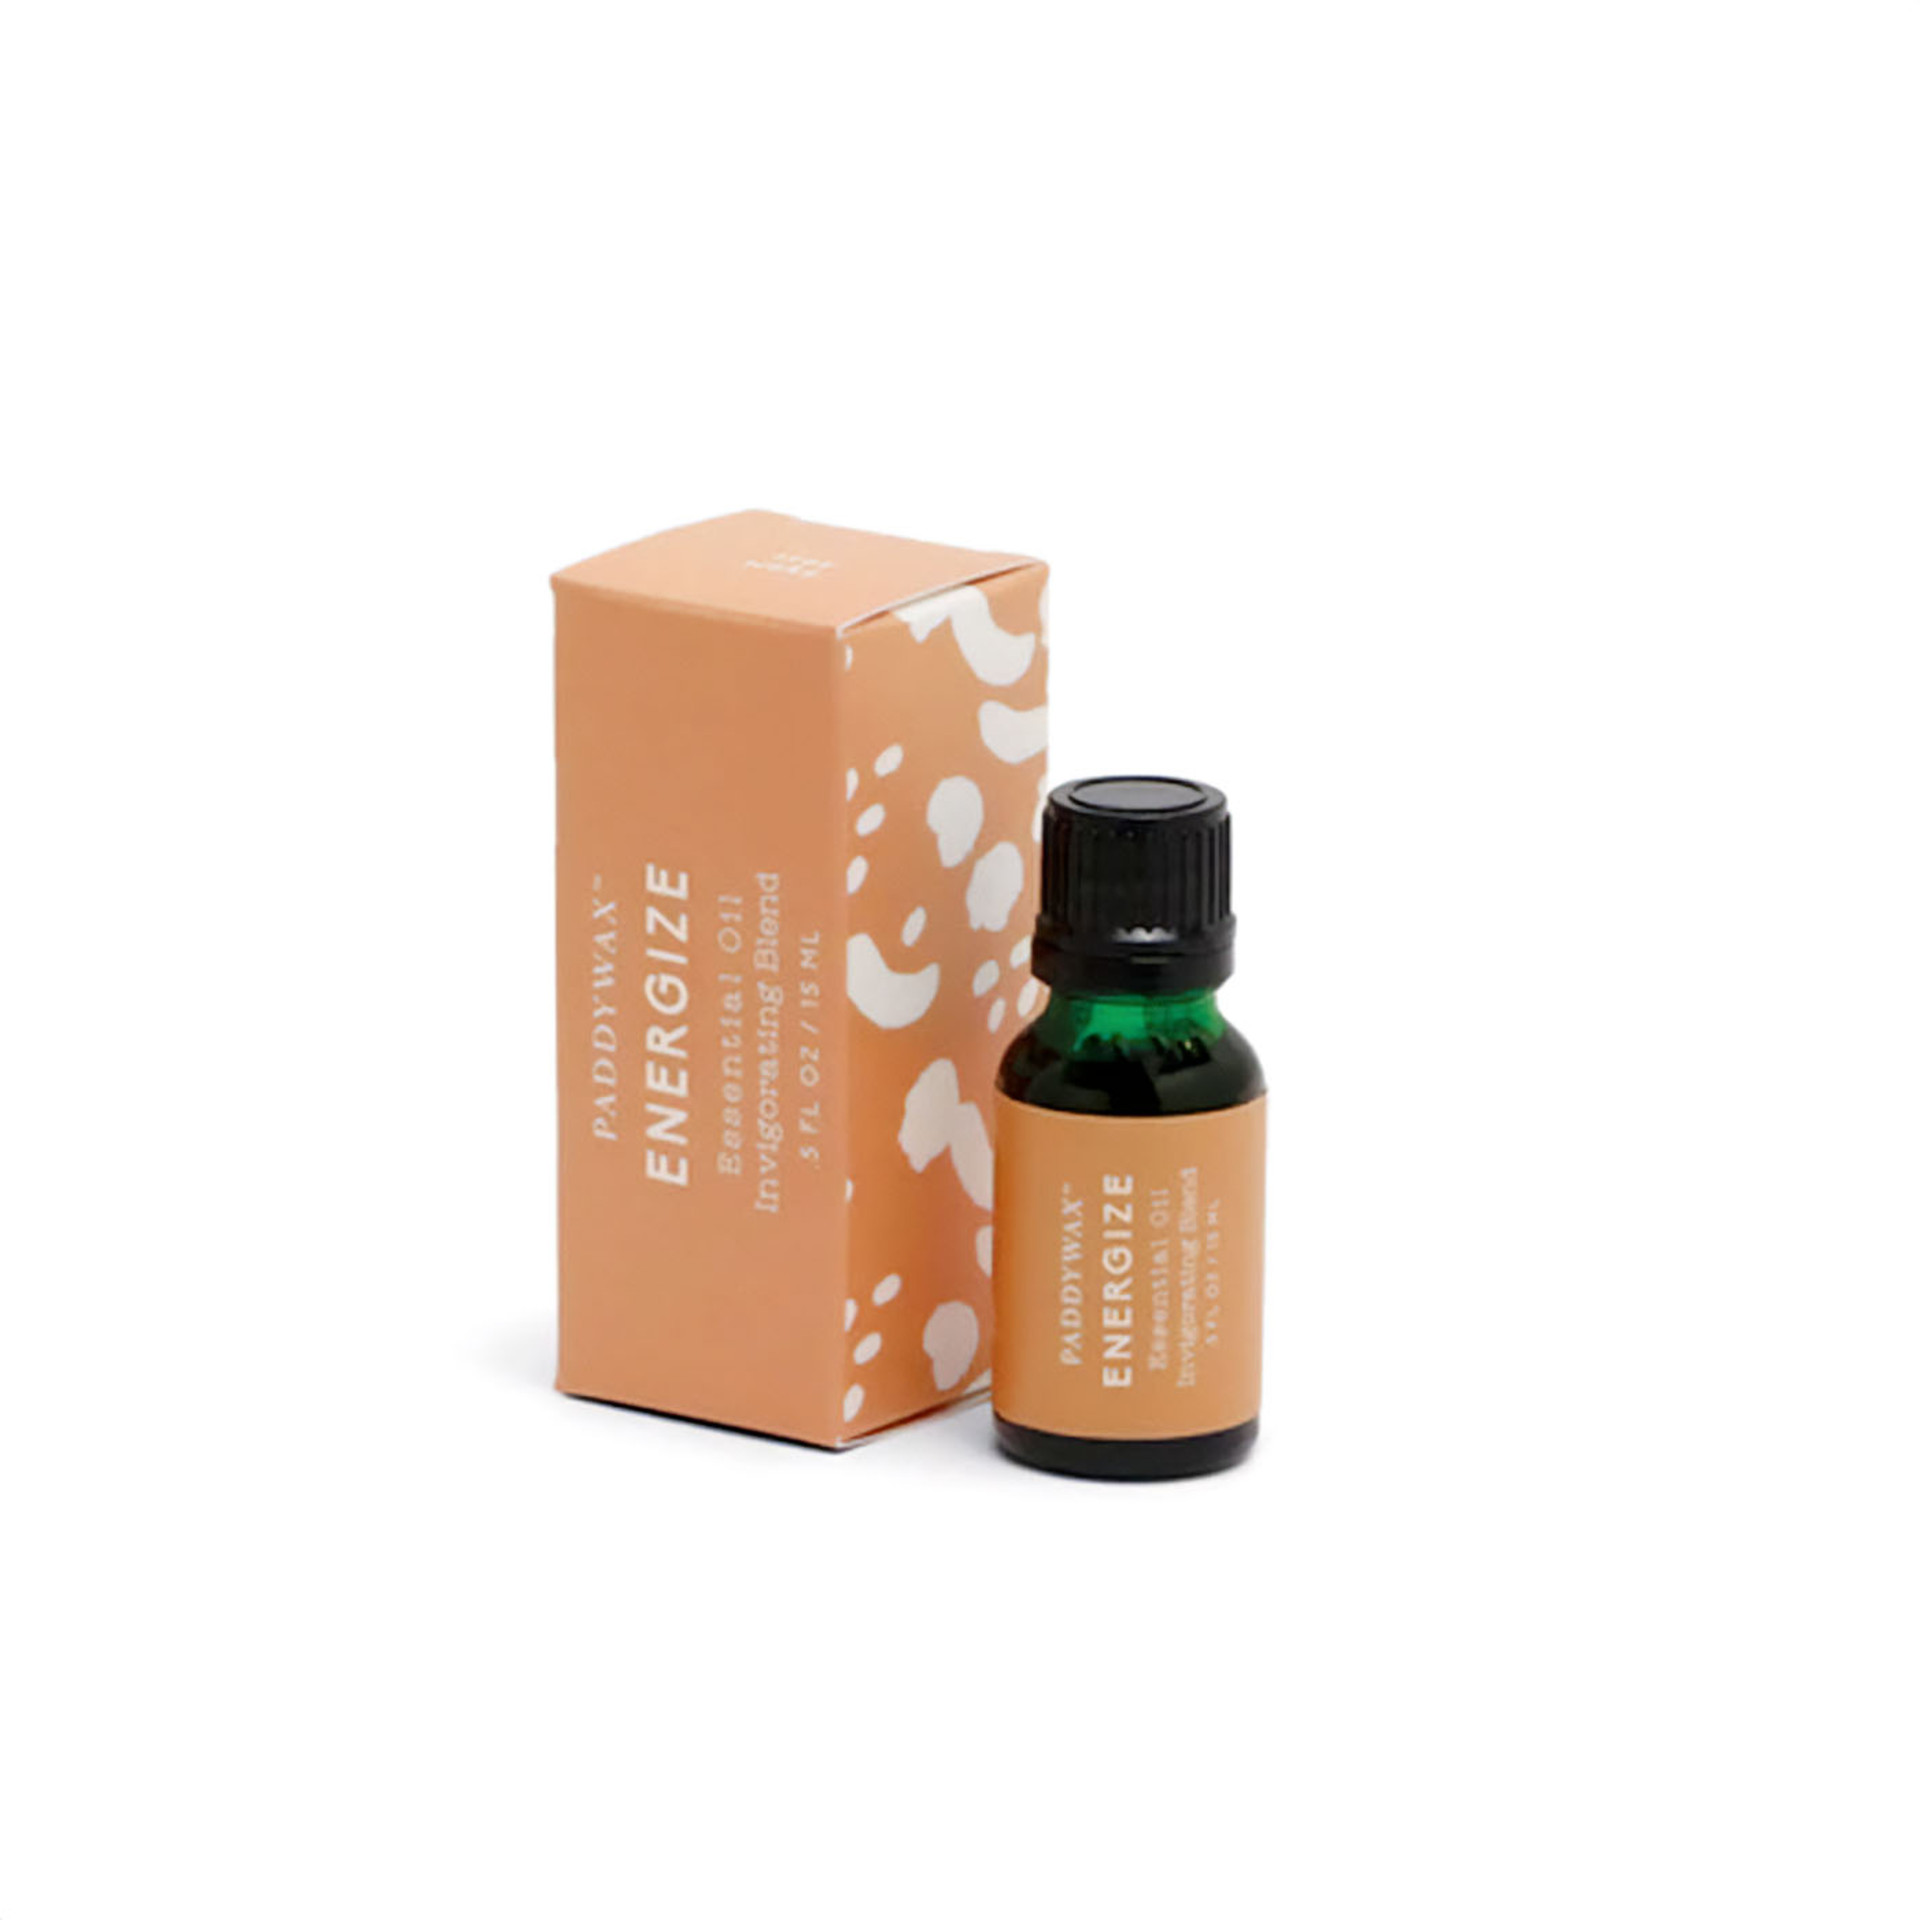 Paddywax Energy Invigorating Blend Essential Oil